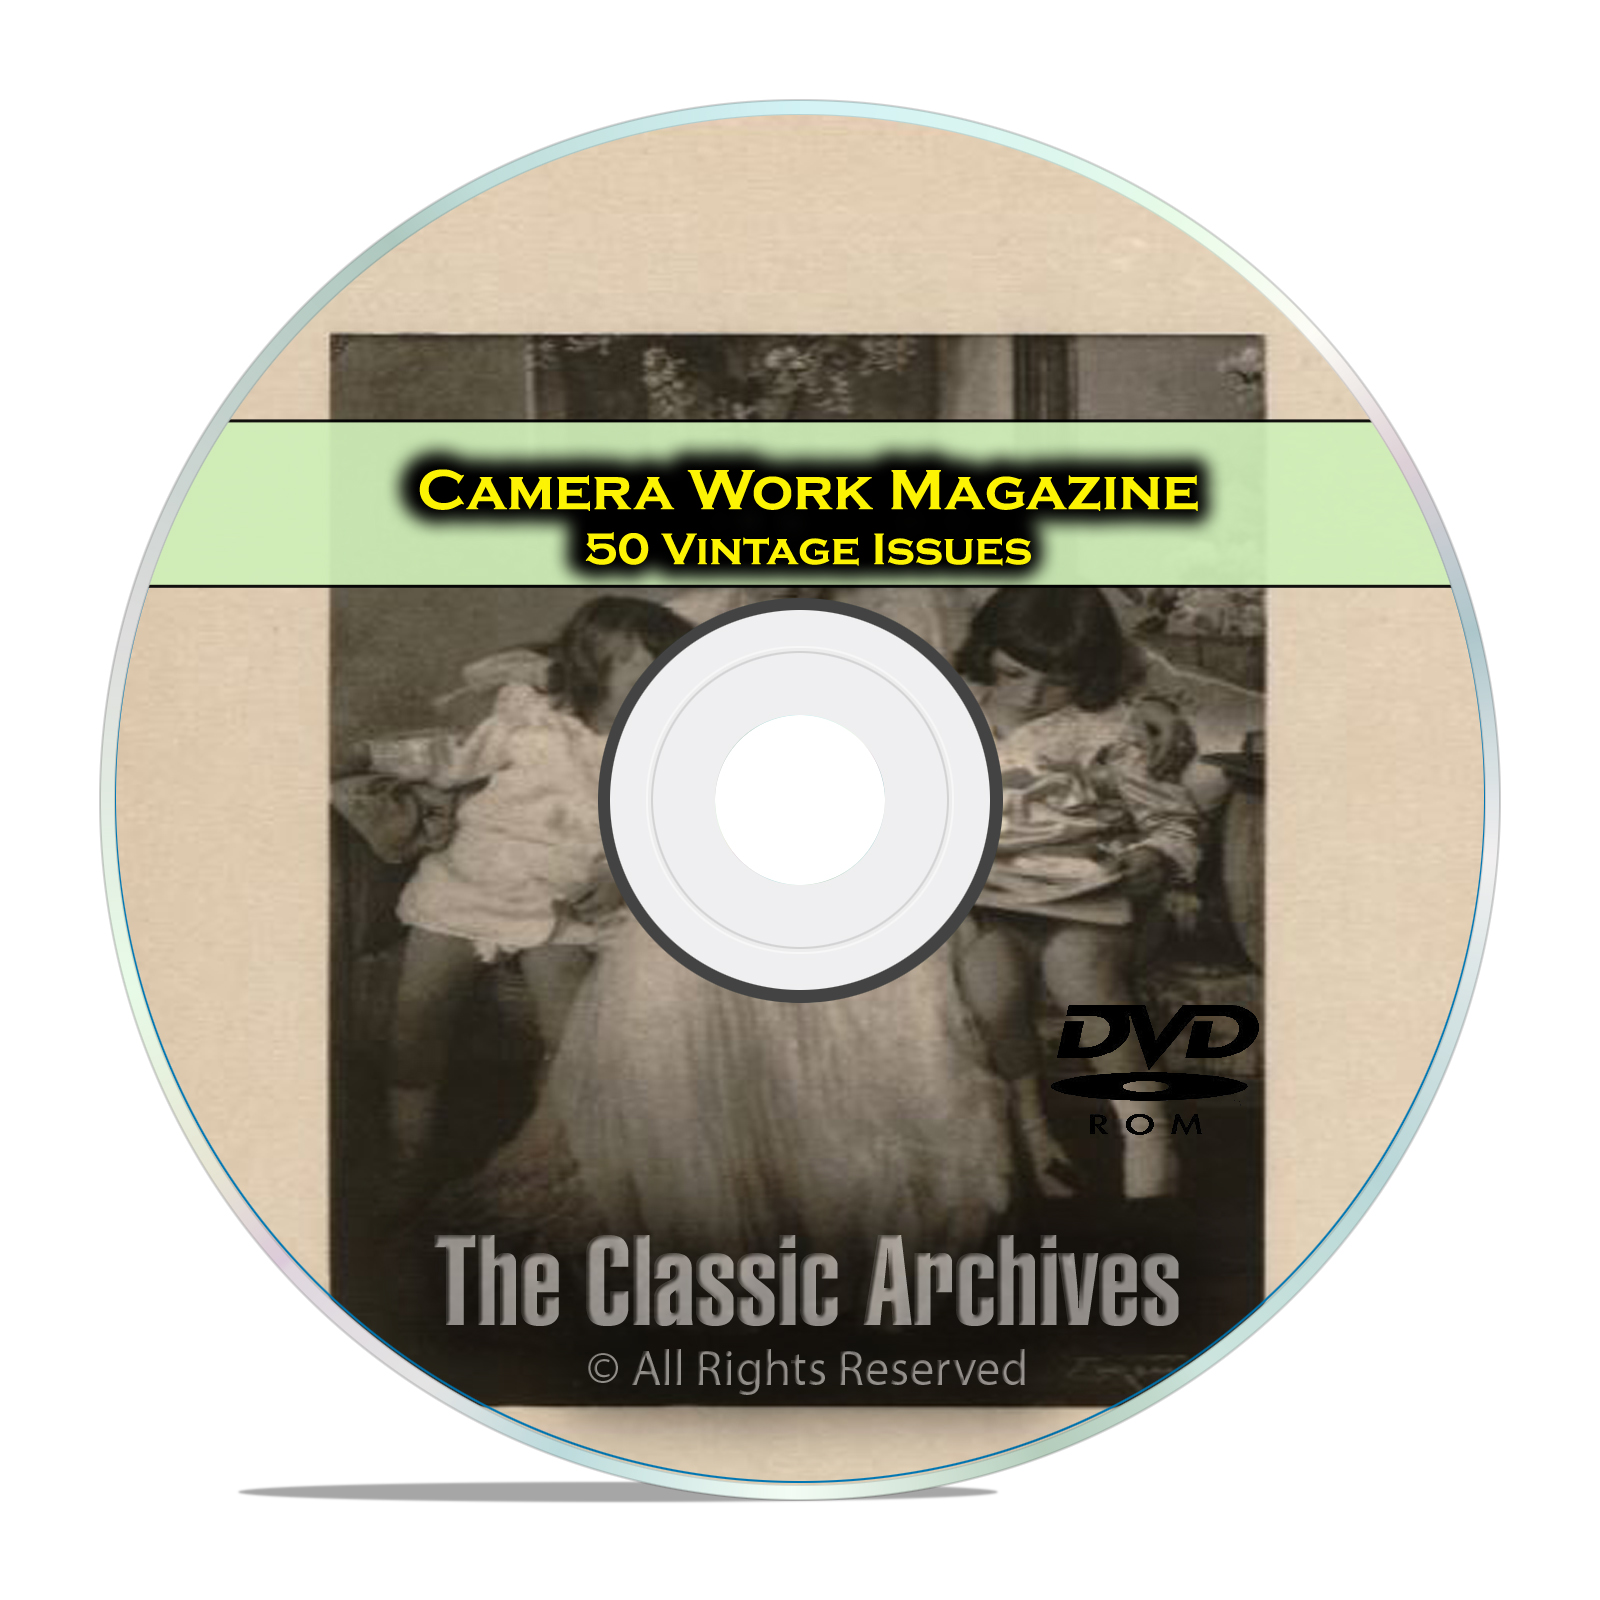 Camera Work Magazine, 50 Vintage Magazines 1903-1917 Classic Art Photos DVD